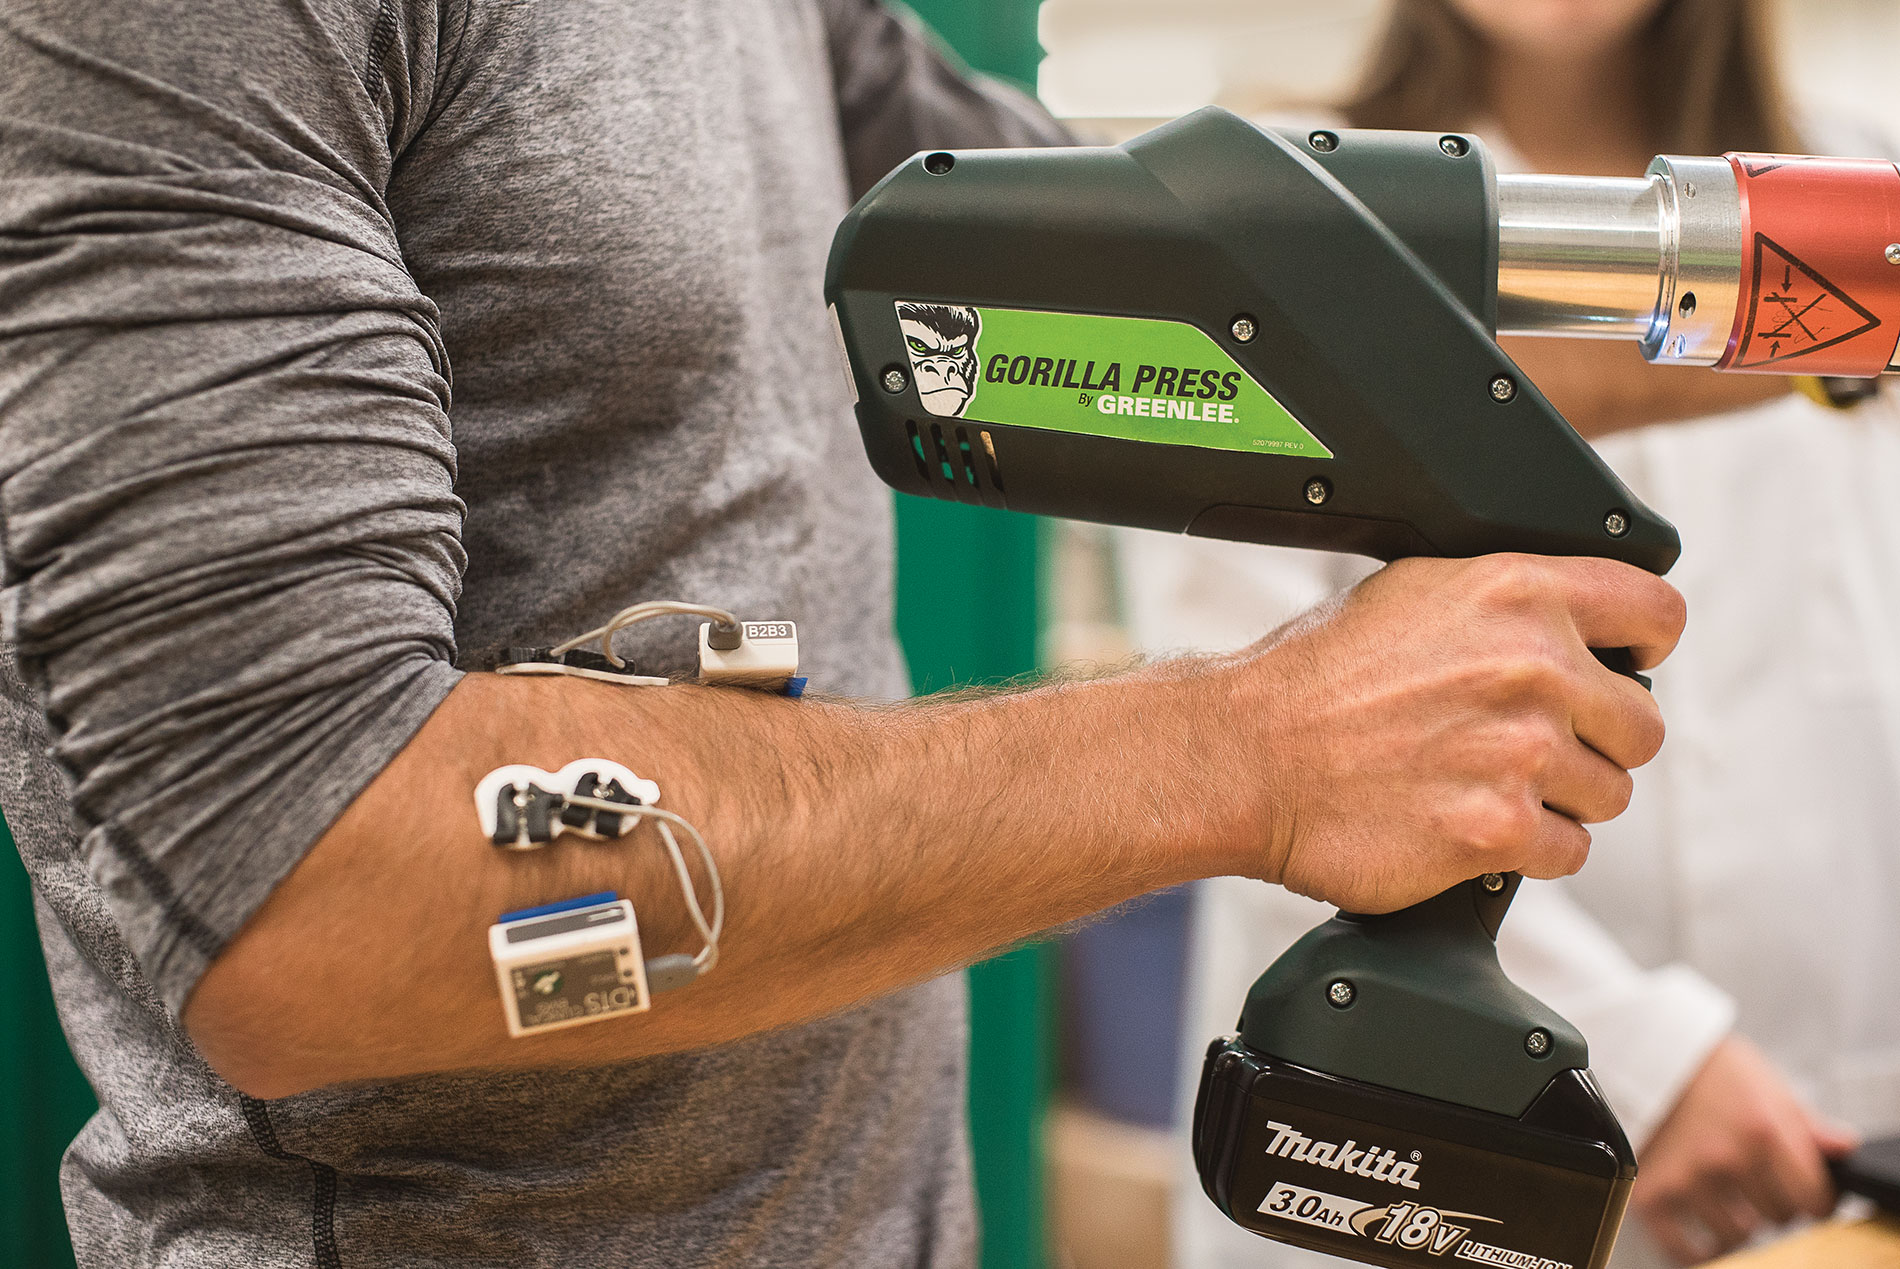 Greenlee's ergonomics lab tests how tool users are affected.